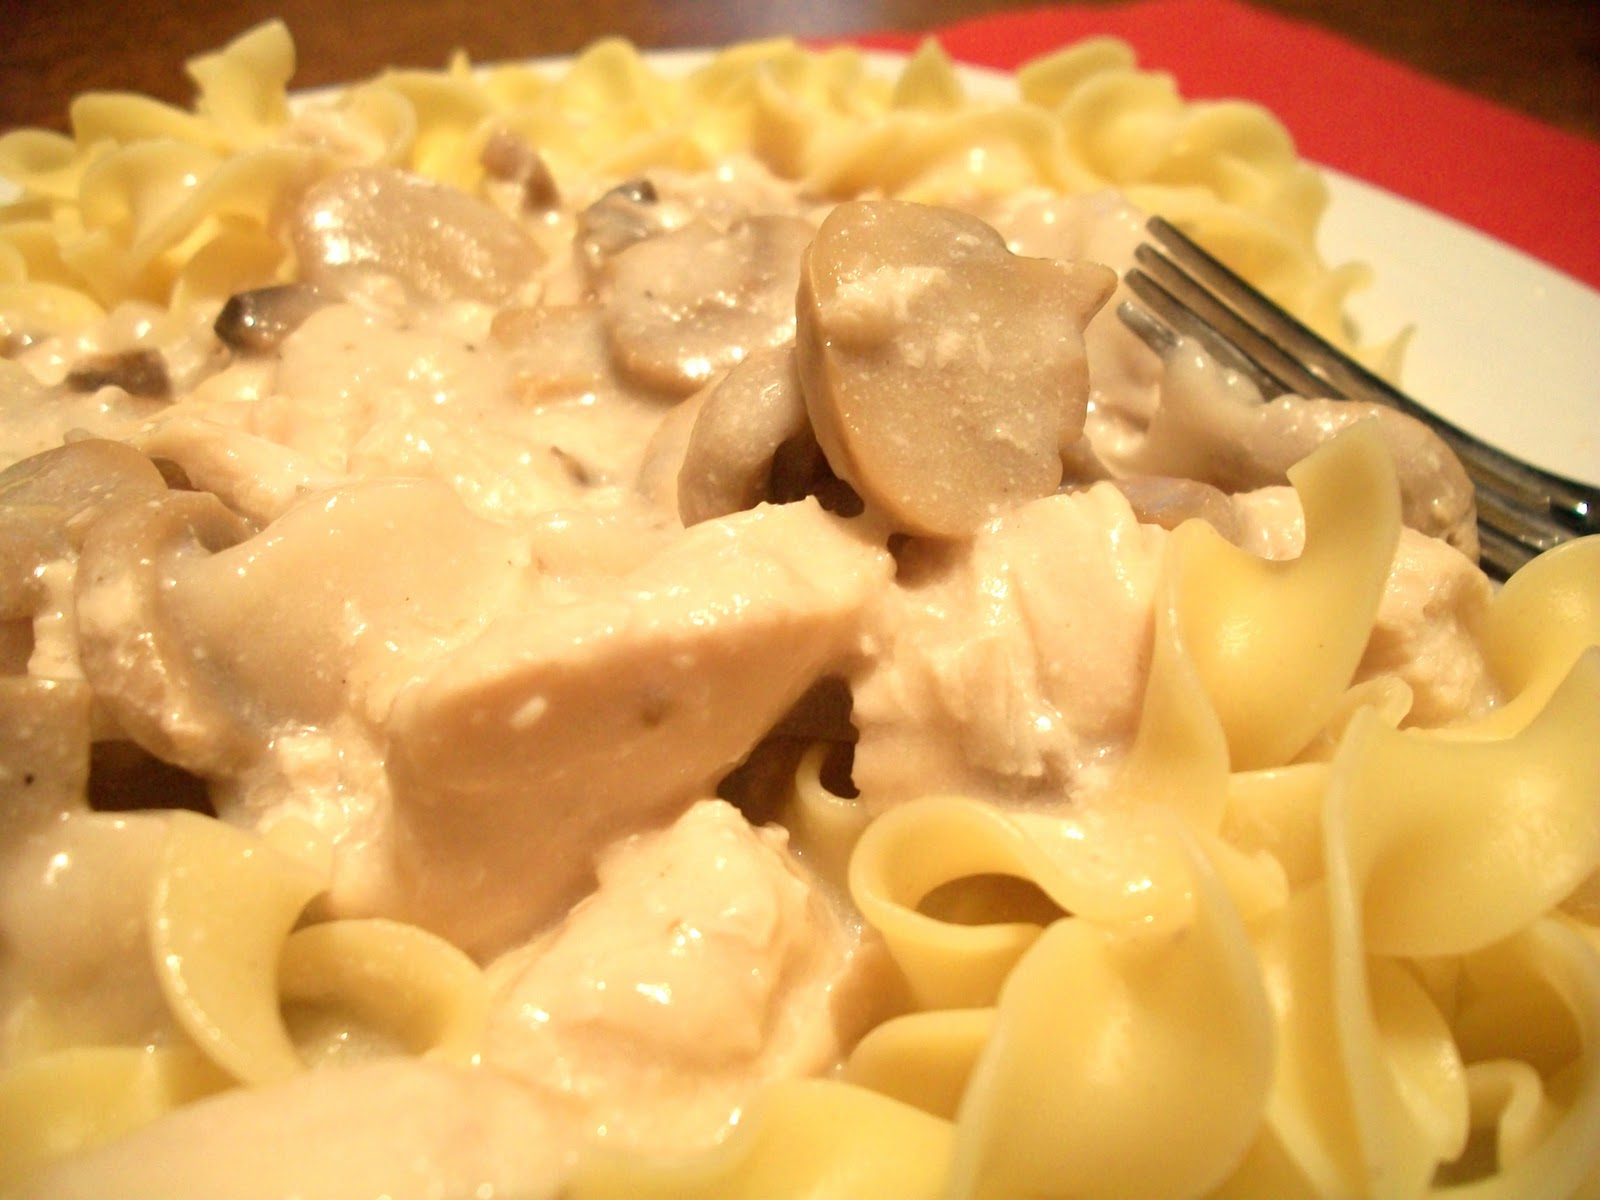 My Kind of Cooking: Slow Cooker Chicken Stroganoff